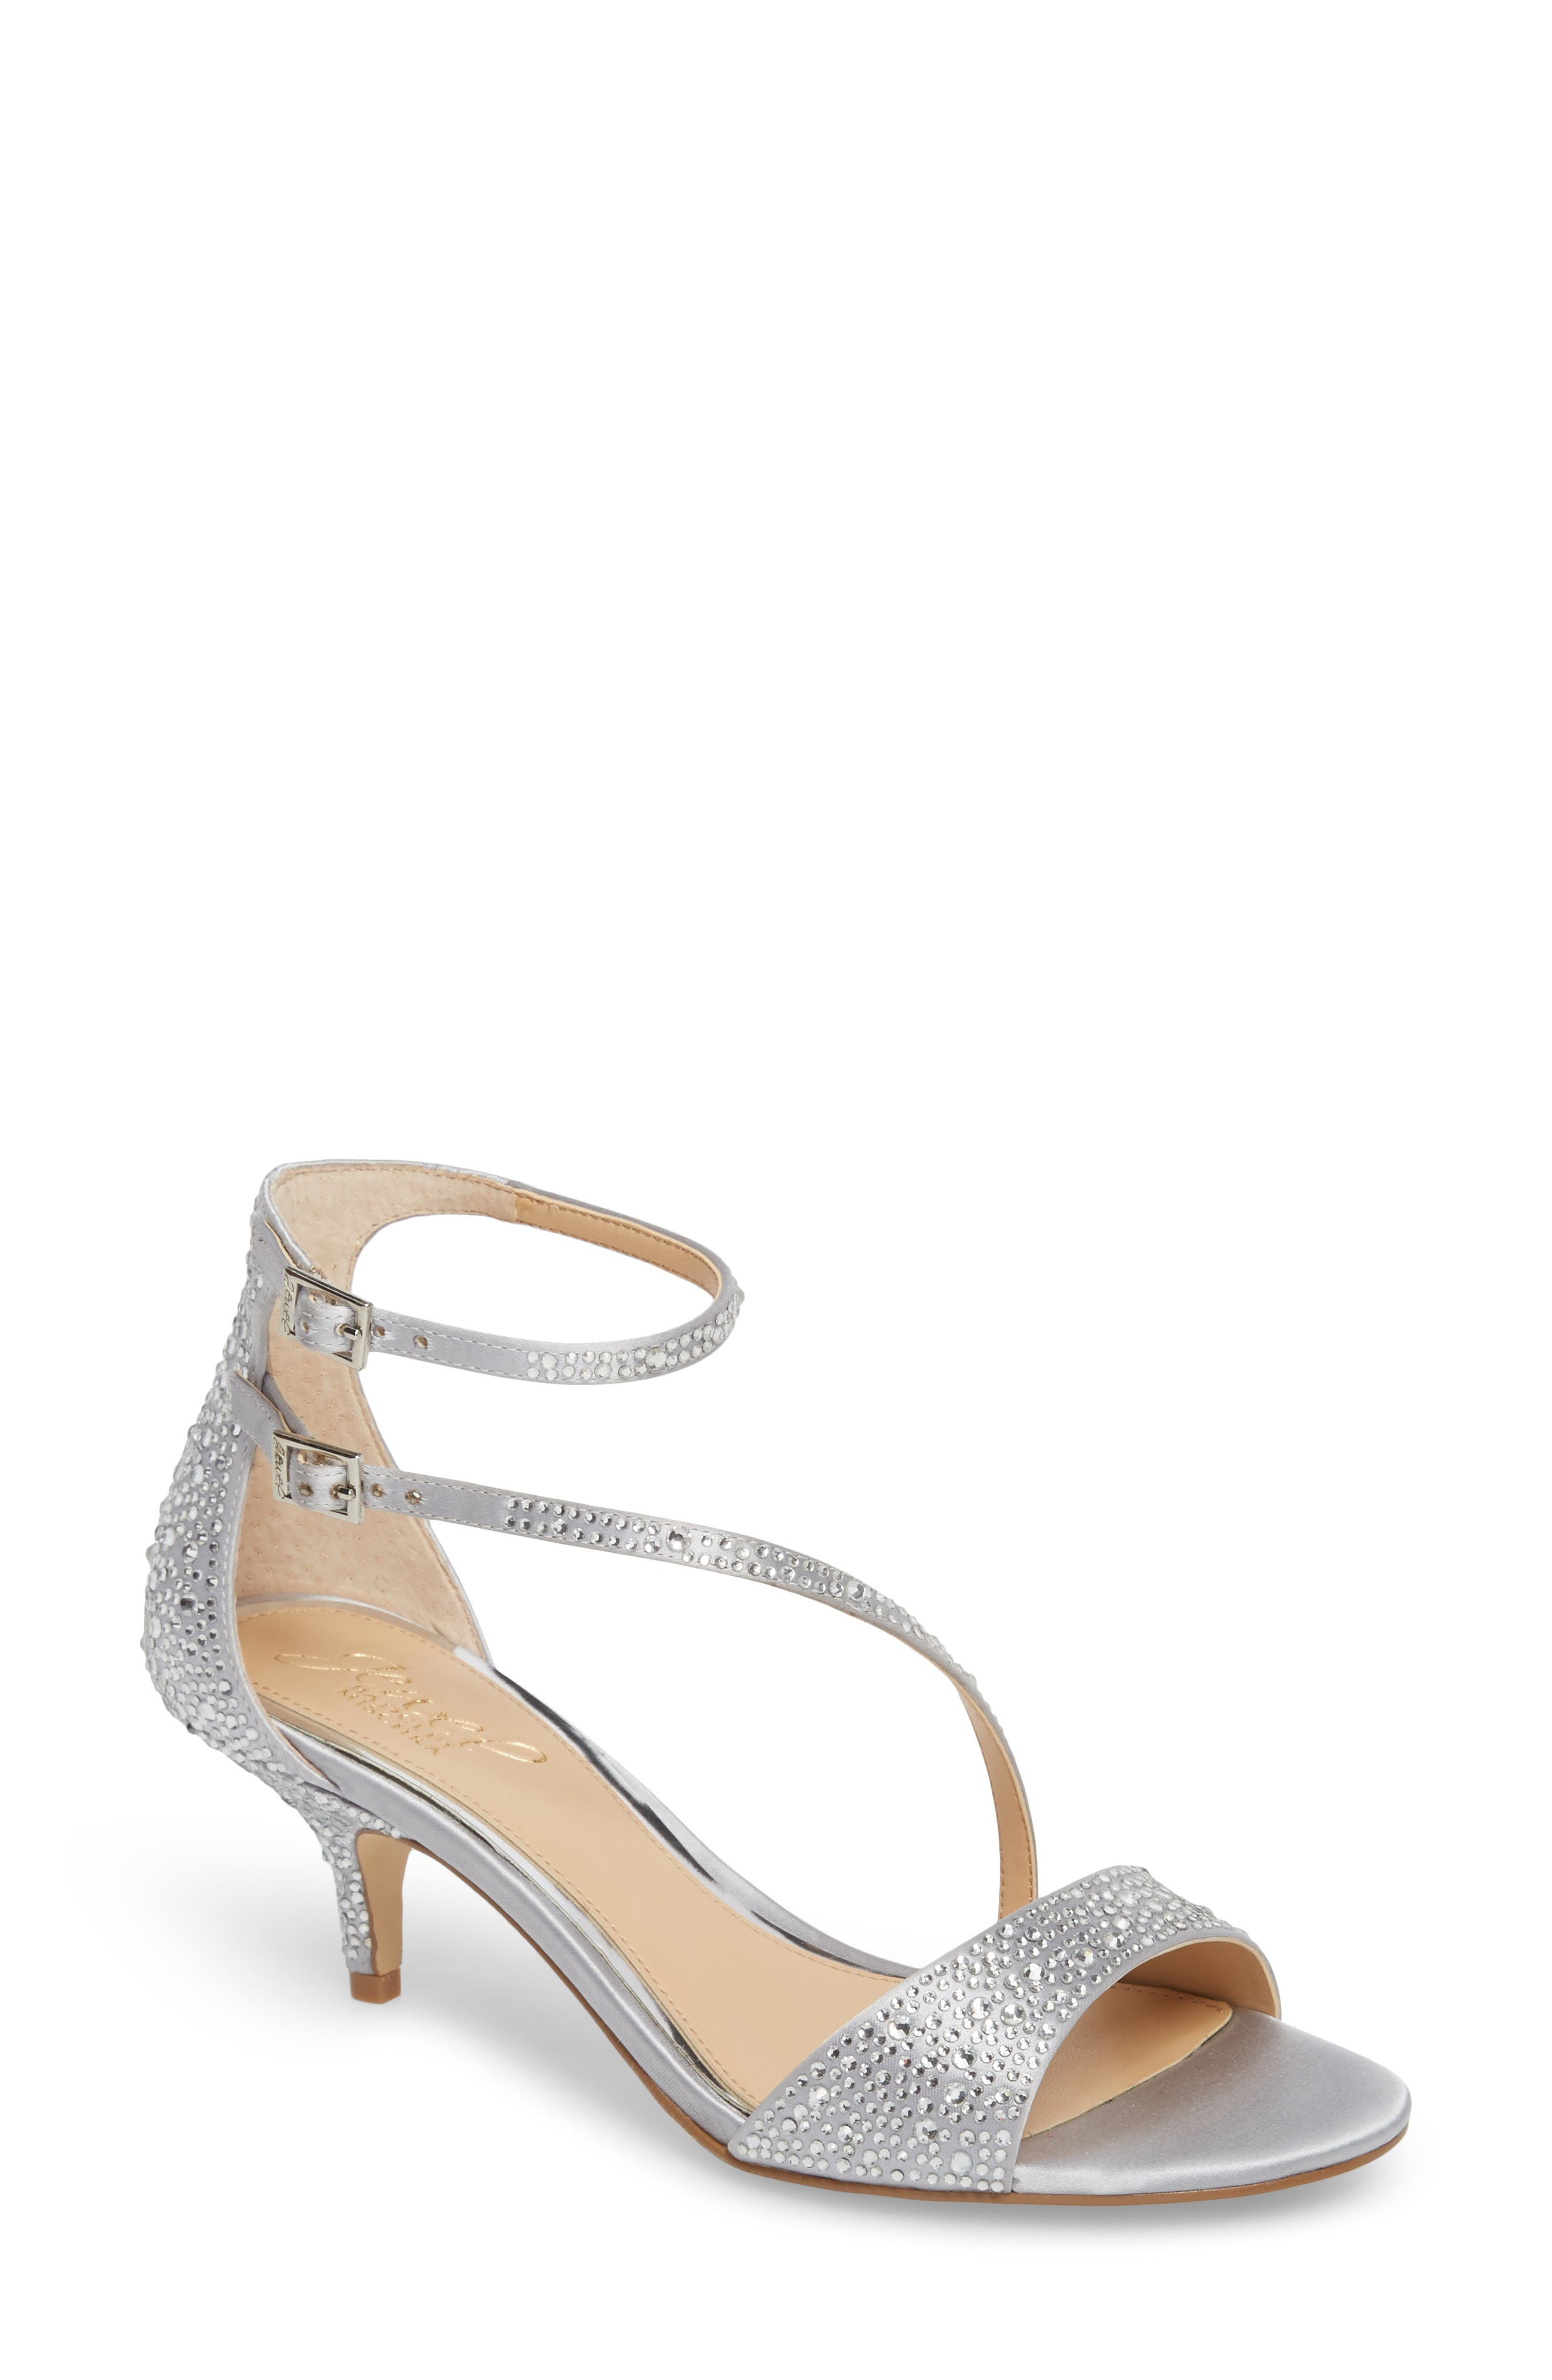 Tangerine Crystal Embellished Sandal,                         Main,                         color, Silver Satin